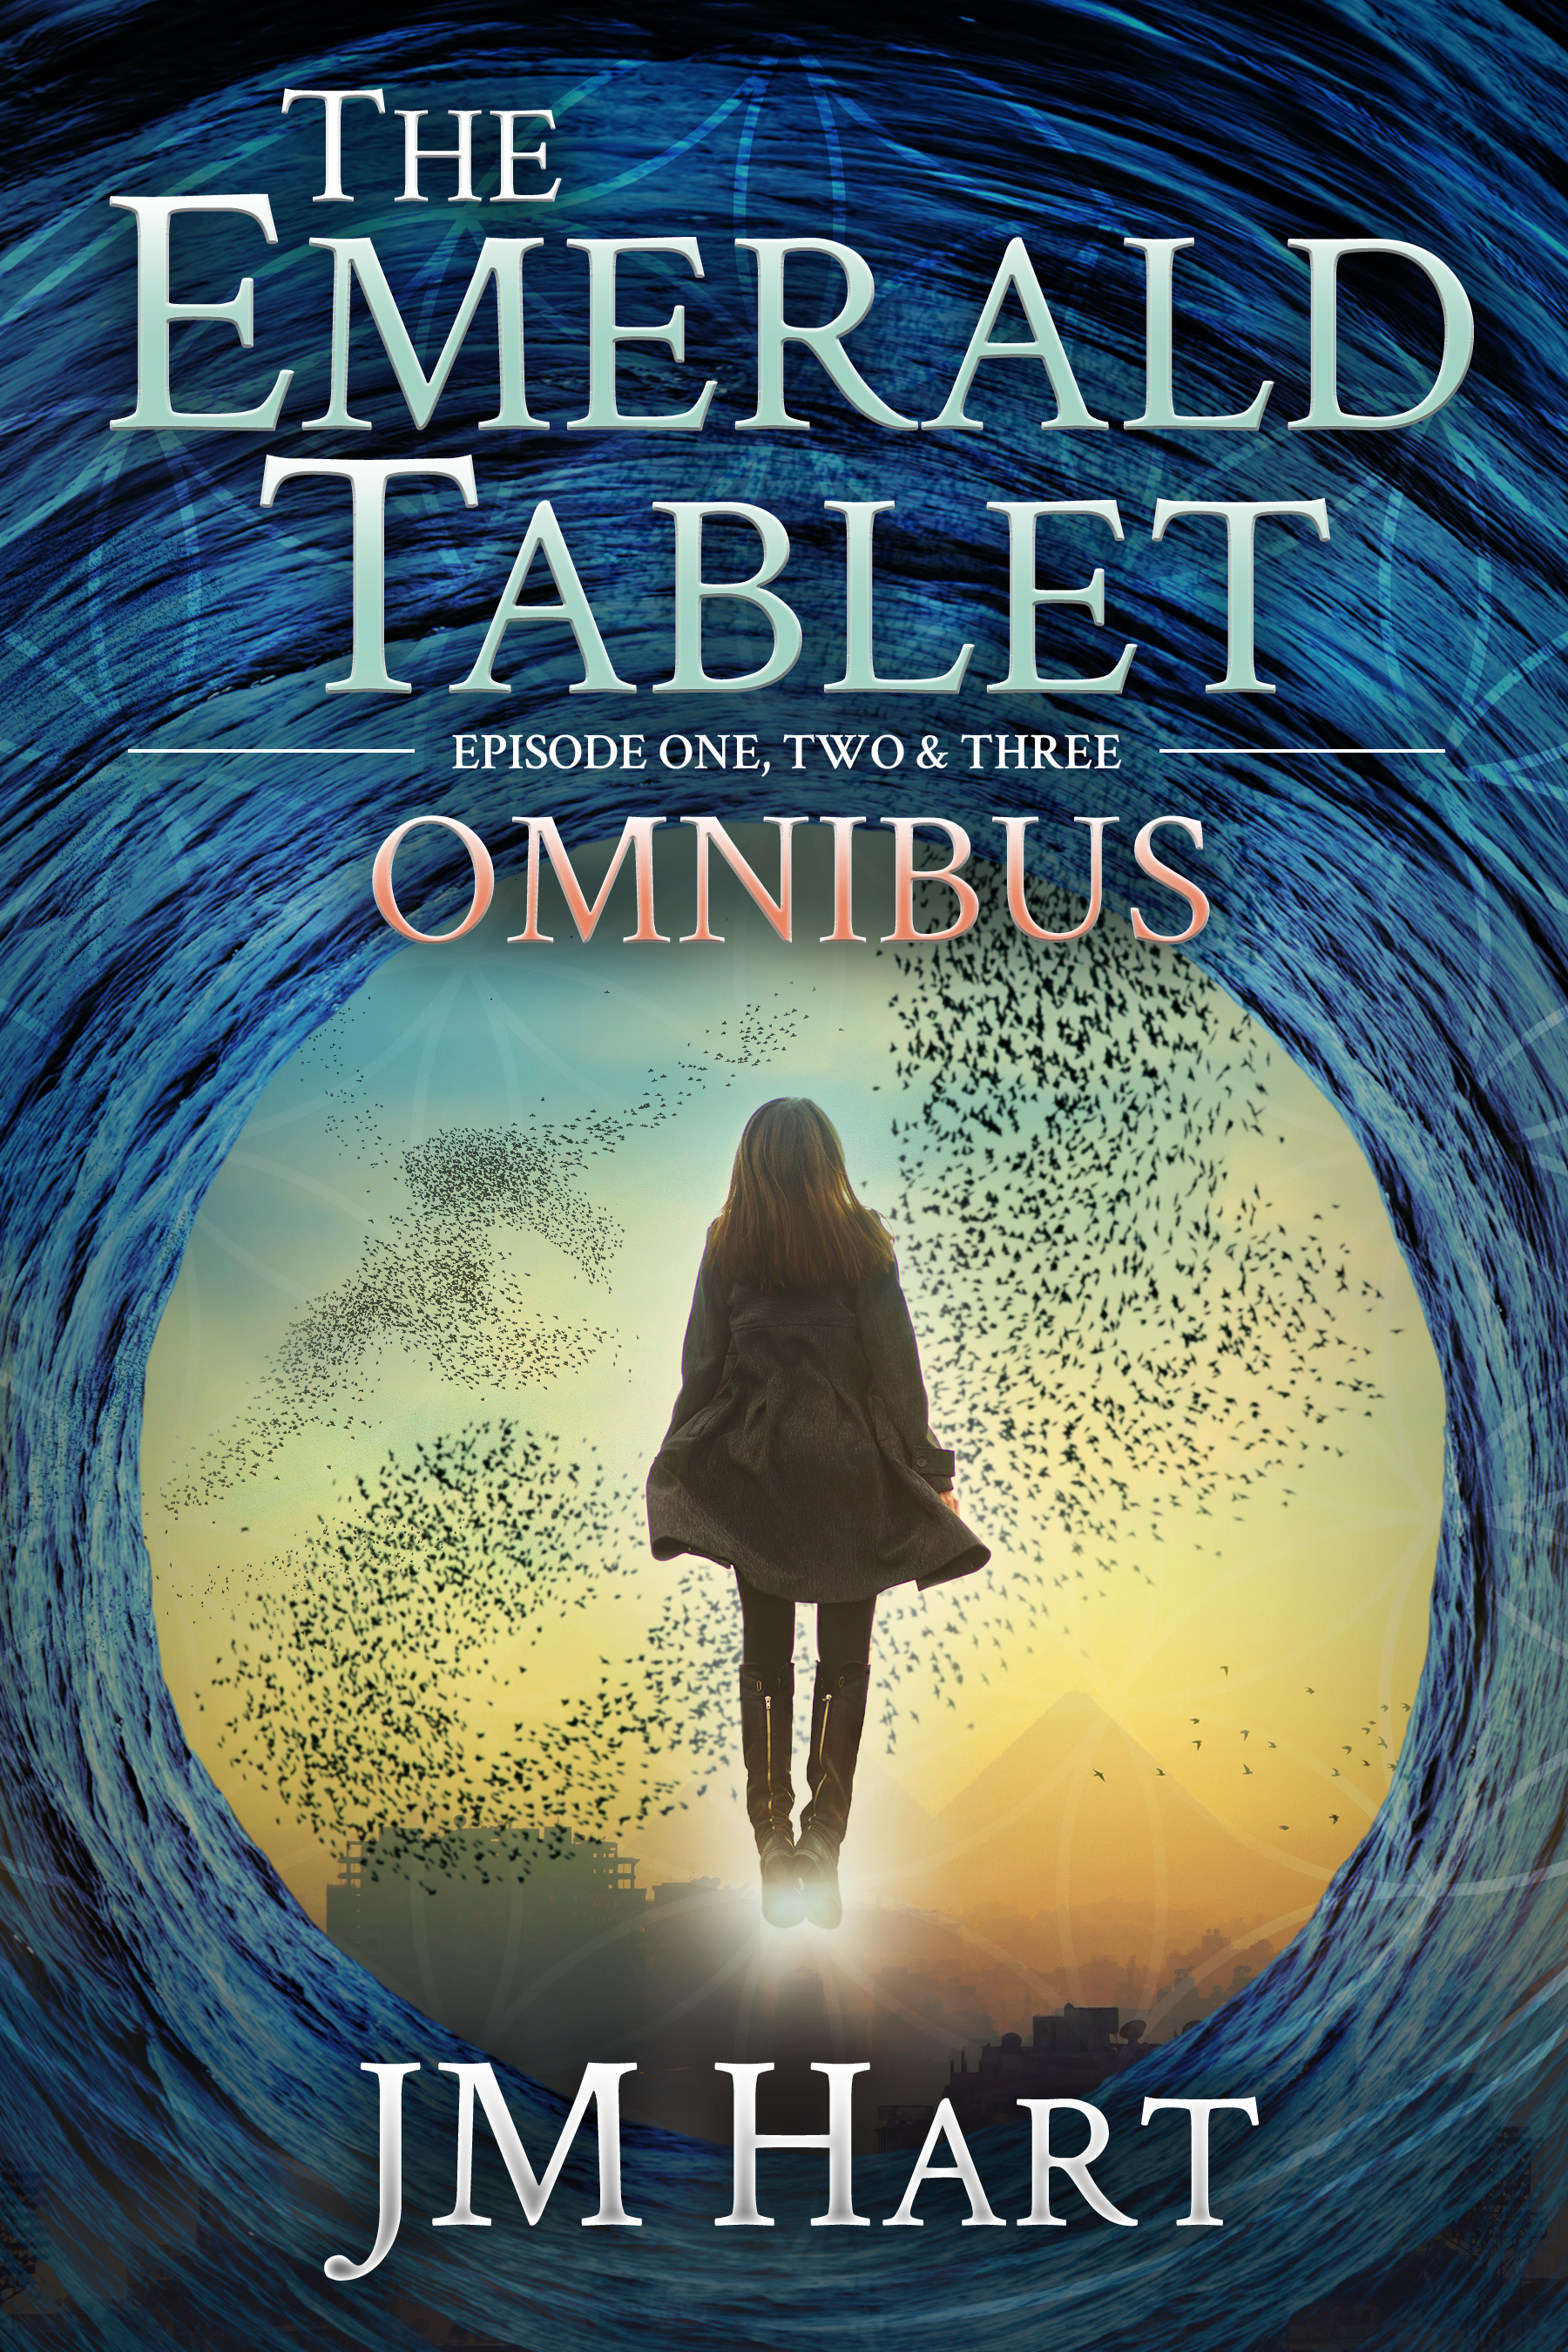 The Emerald Tablet: Omnibus Edition by J.M. Hart